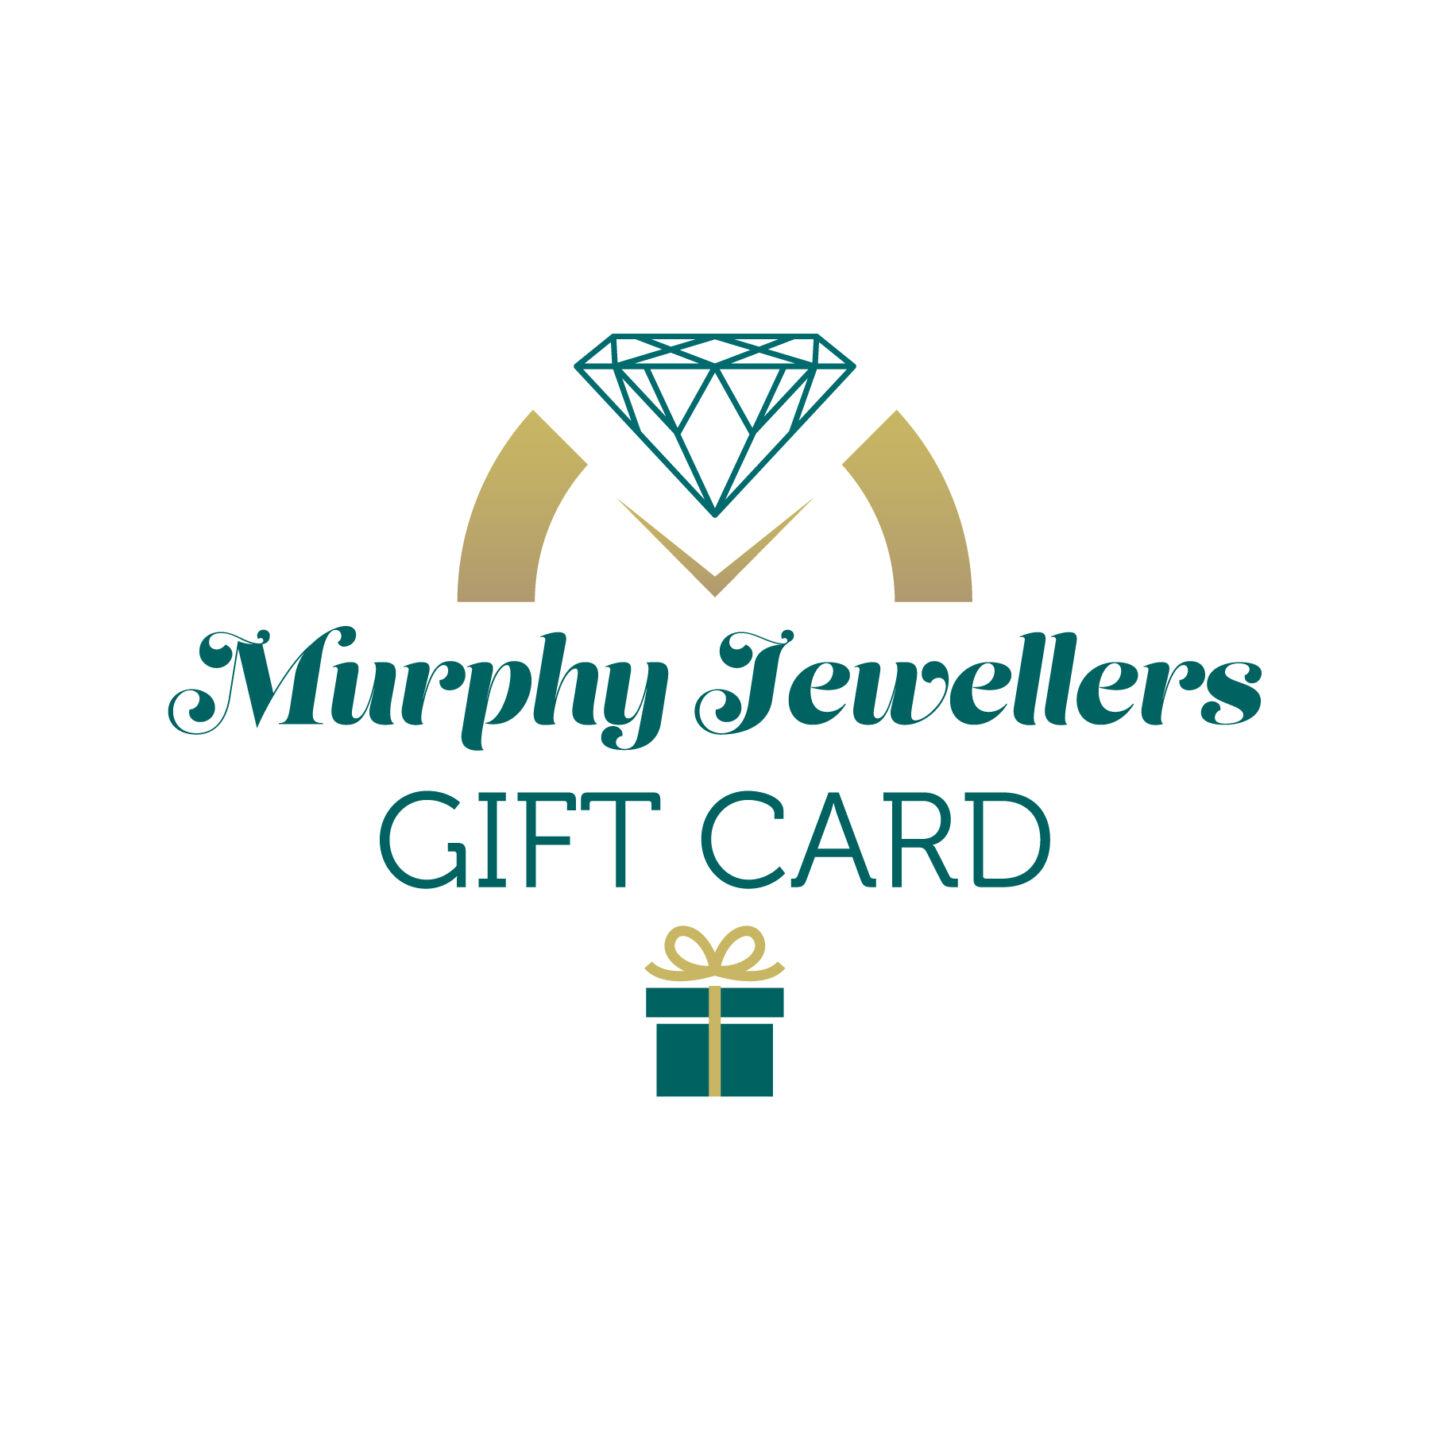 Murphy Jewellers of Kilkenny | Gift Cards